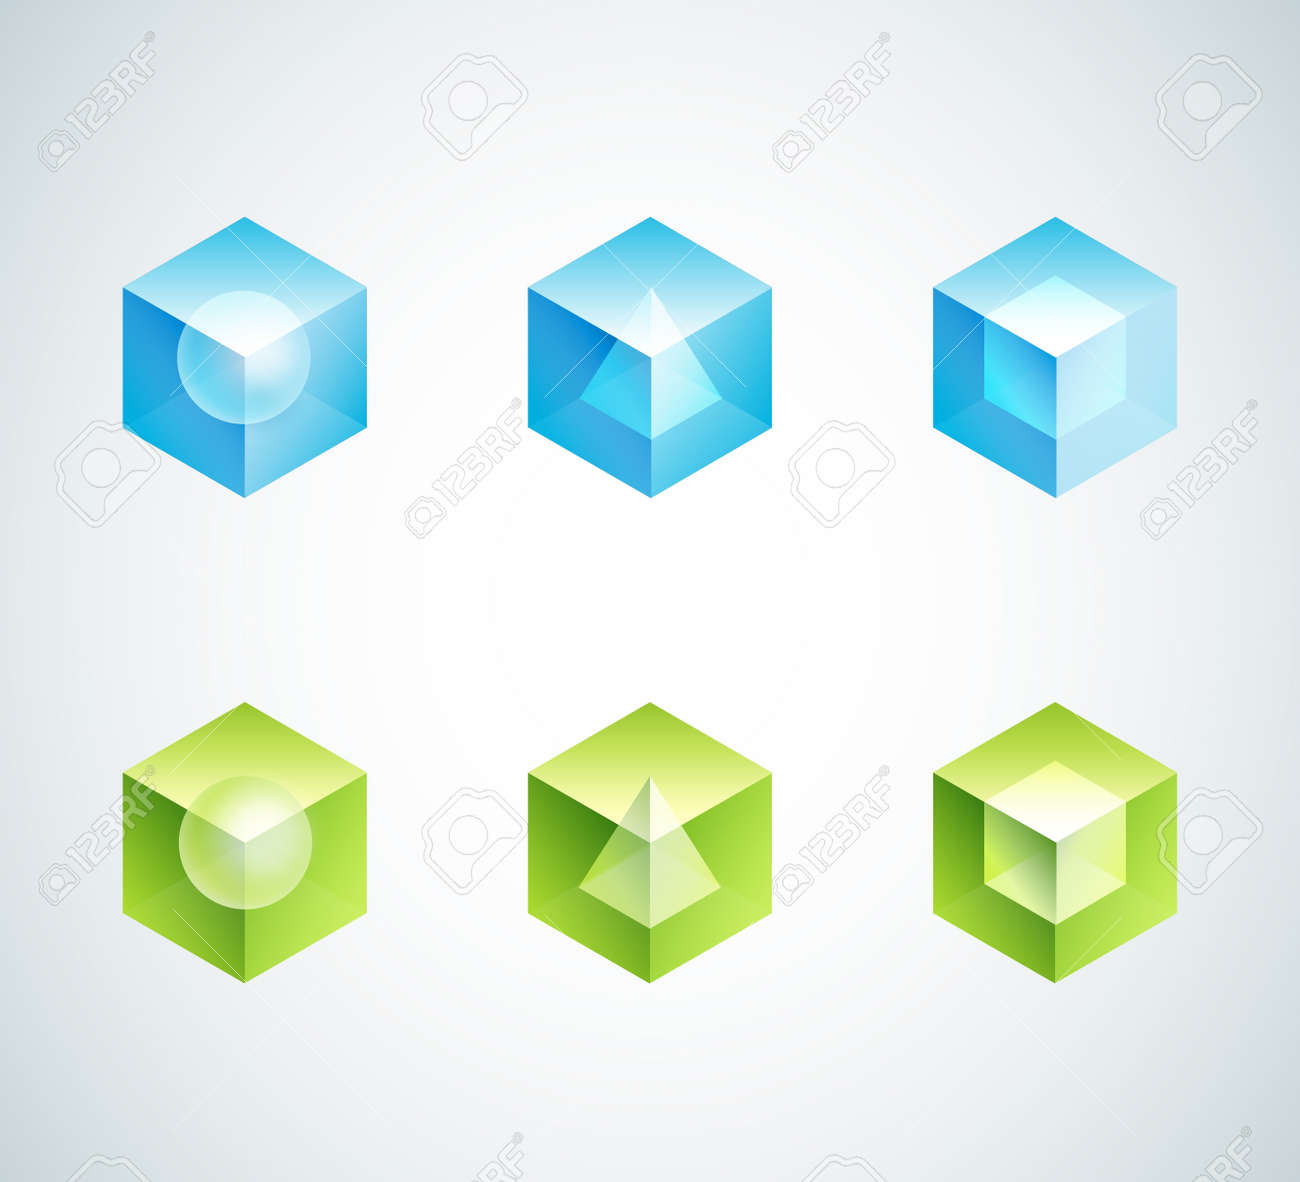 Abstract Cube Icons Shapes Design - Blue And Green Color